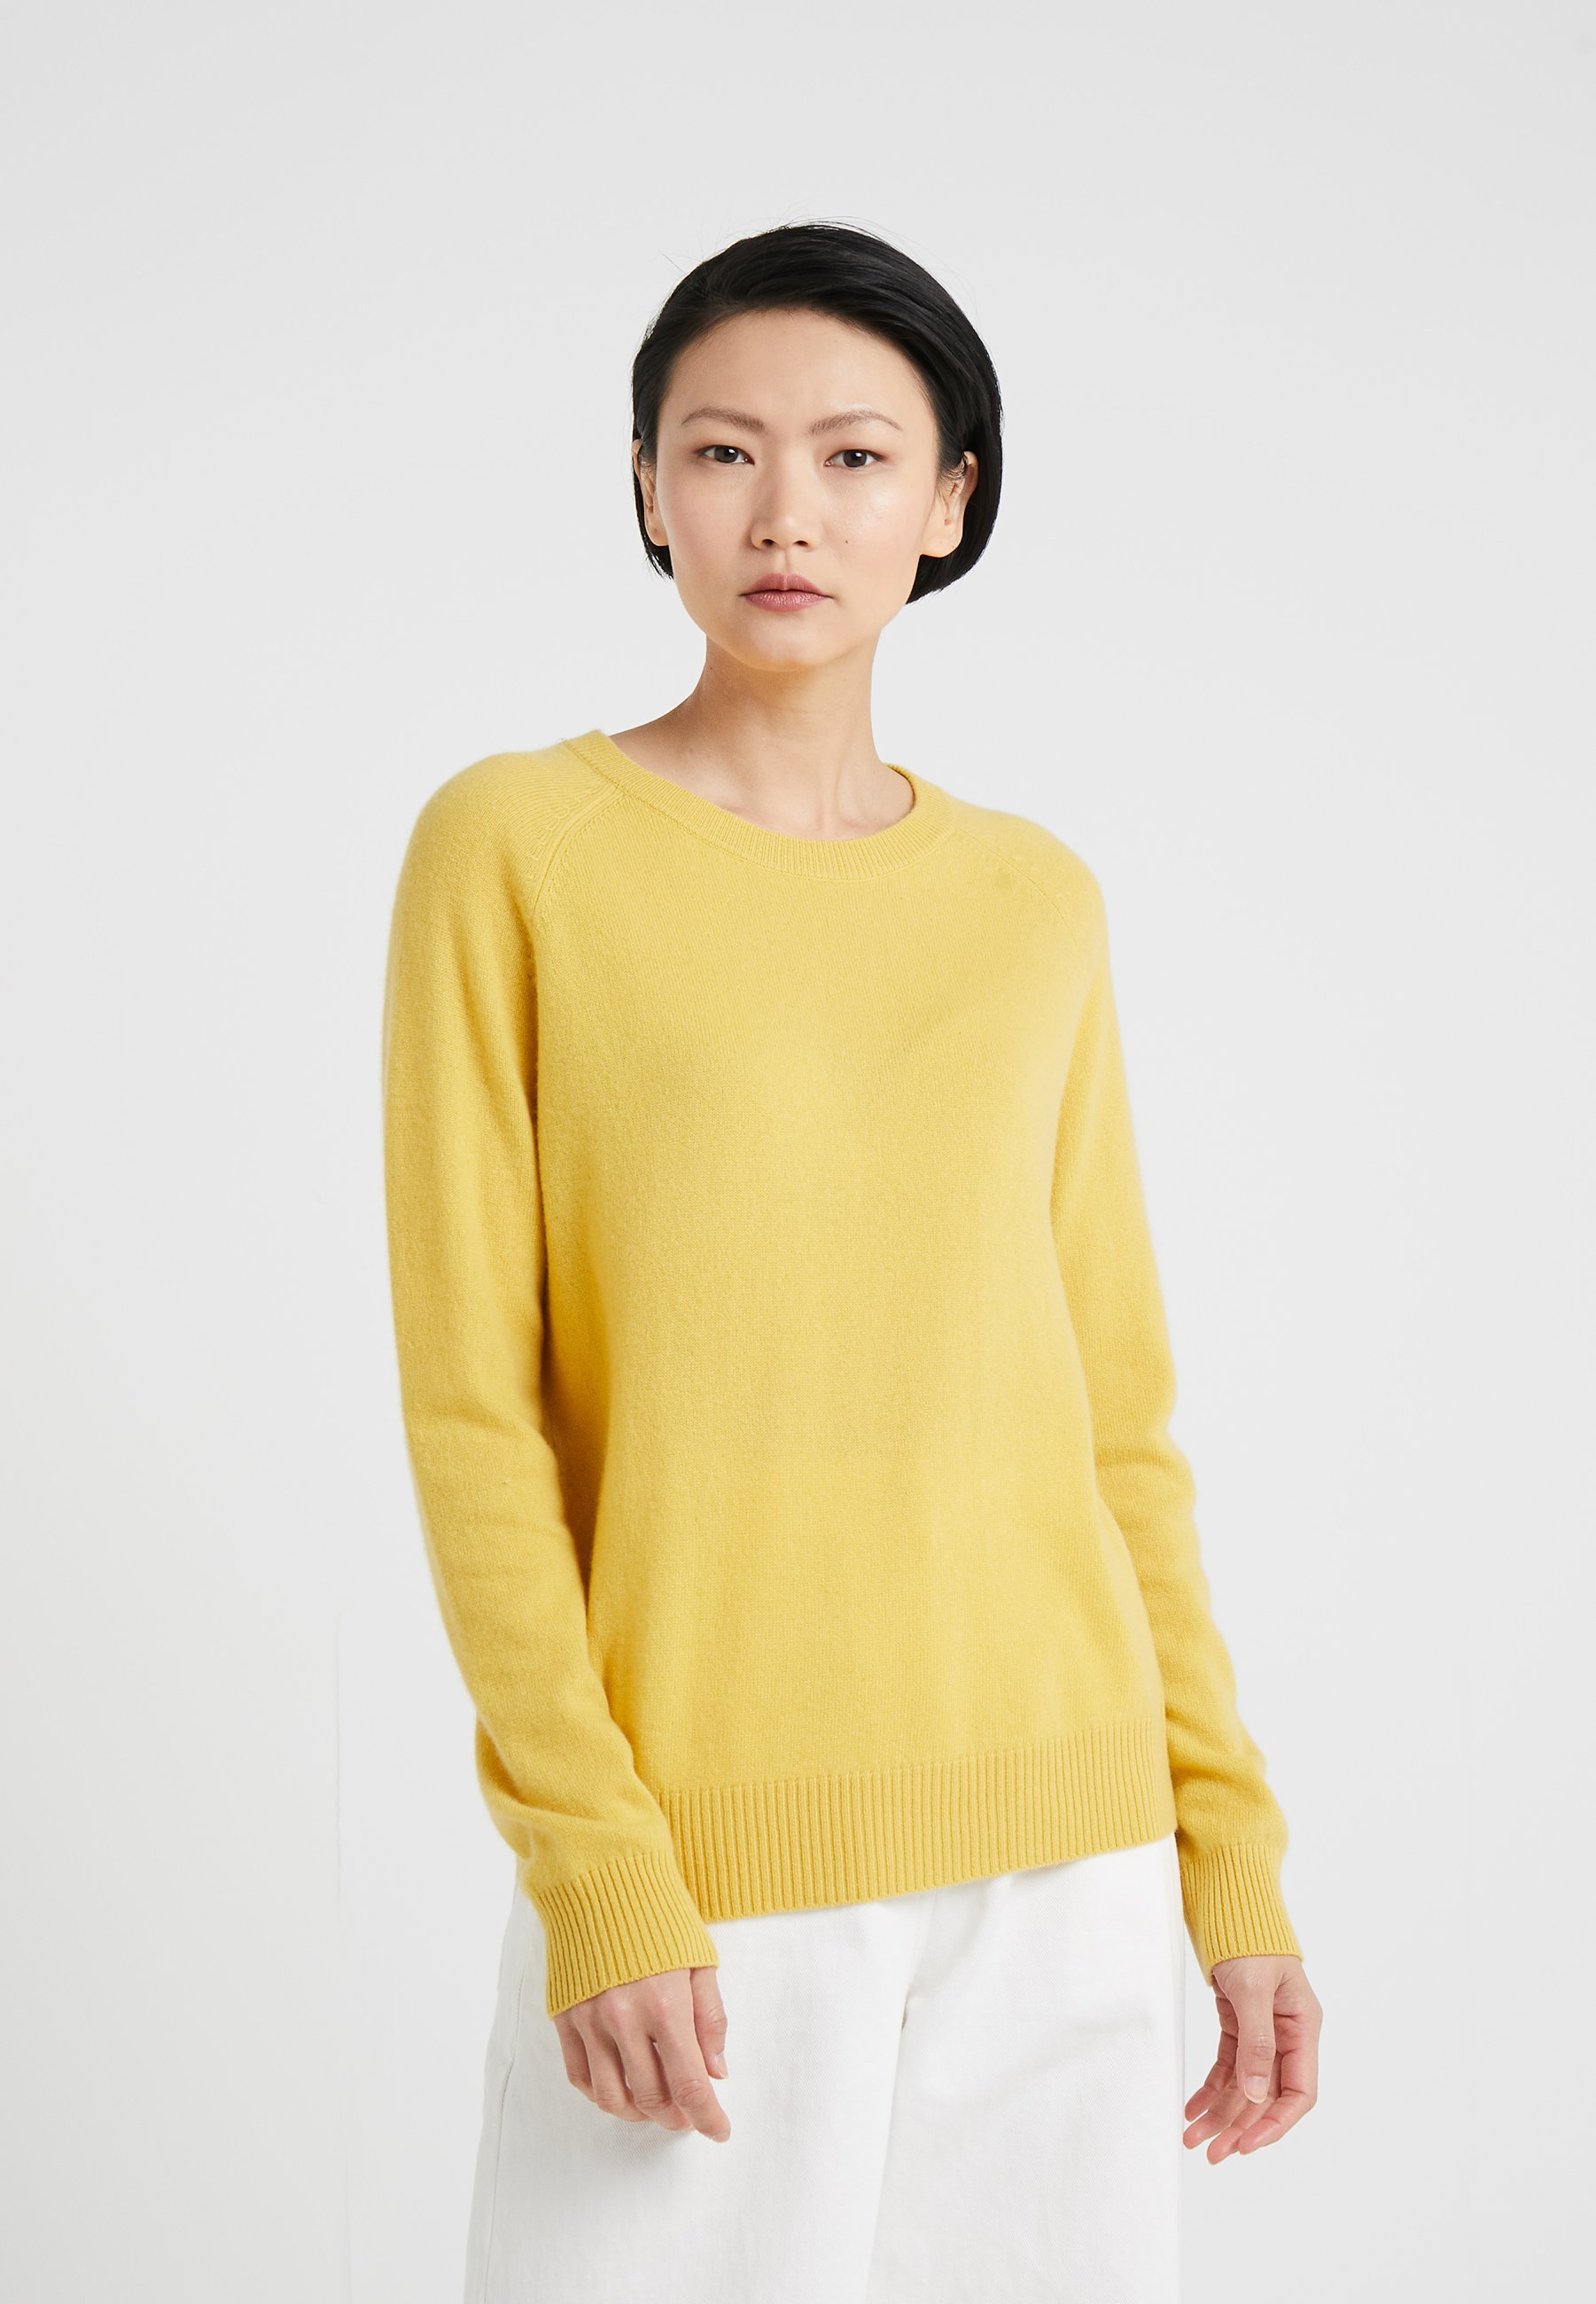 Misted Misted Day Yellow Day MilaMaglione MilaMaglione 2nd 2nd VqUGpSzM